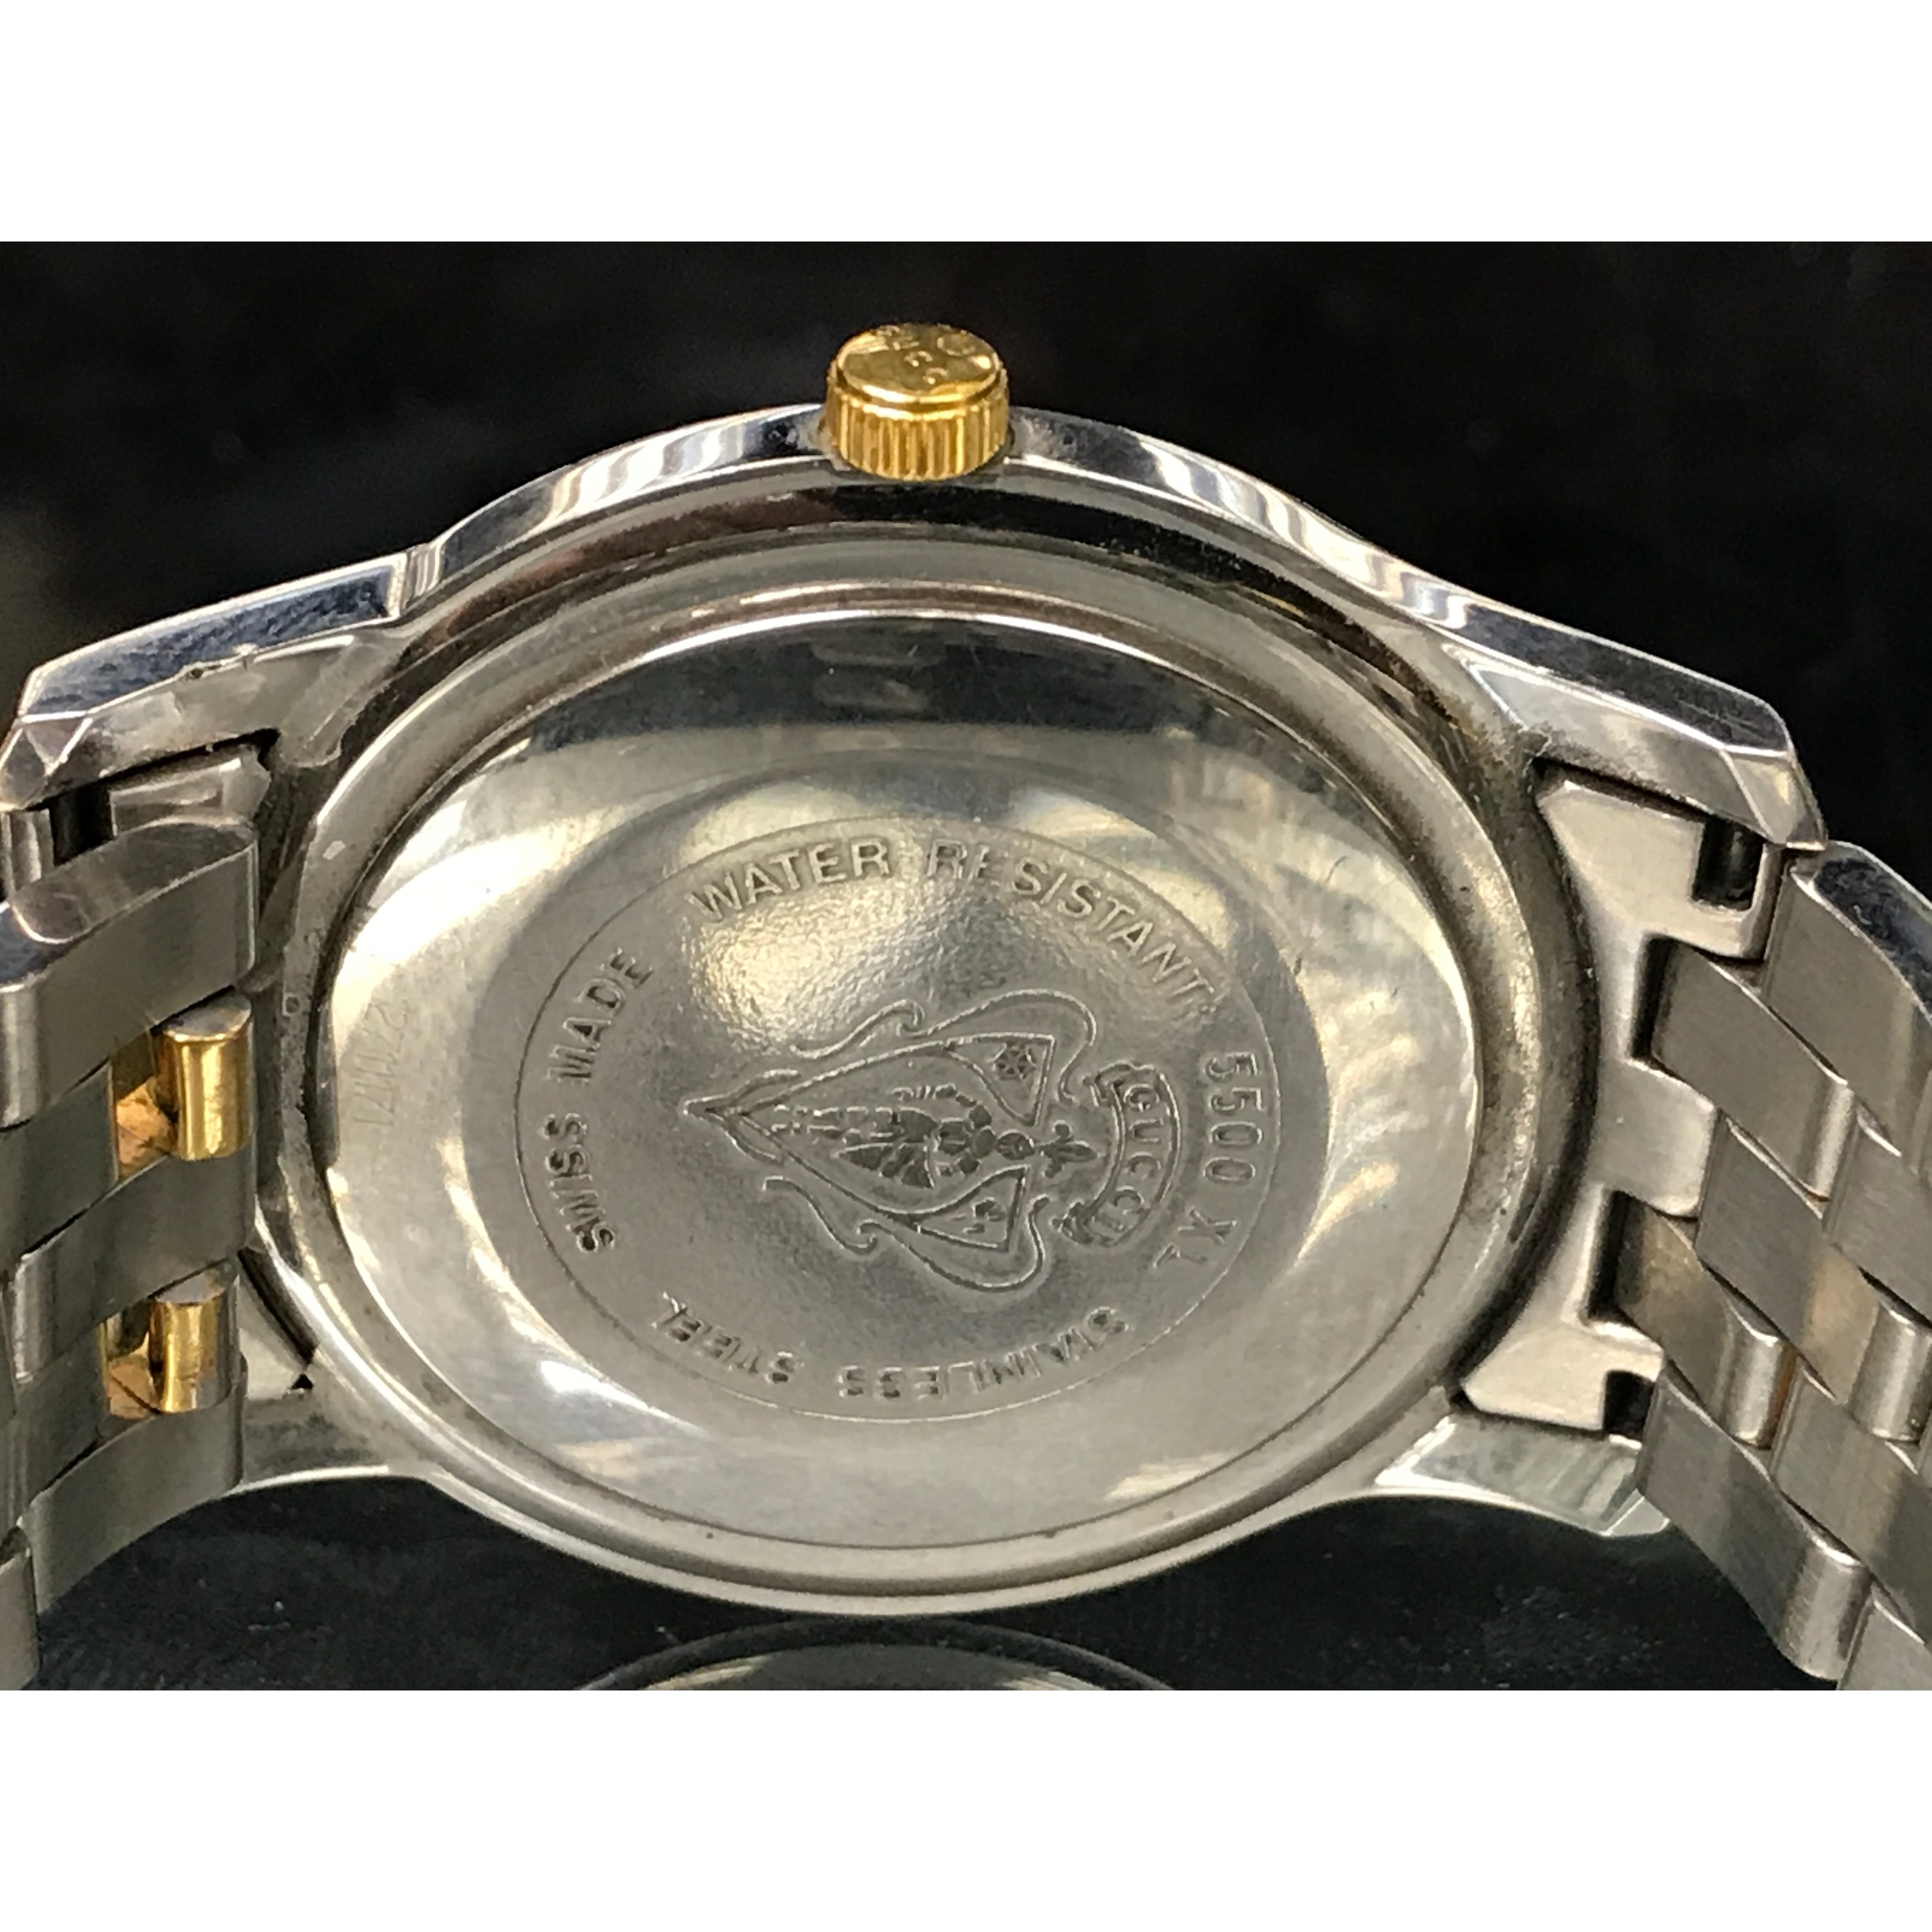 b44e7fbca7e Shop Gucci 5500 YA055216 Stainless Steel Gold Plated Quartz Men s Watch -  Free Shipping Today - Overstock - 17669128